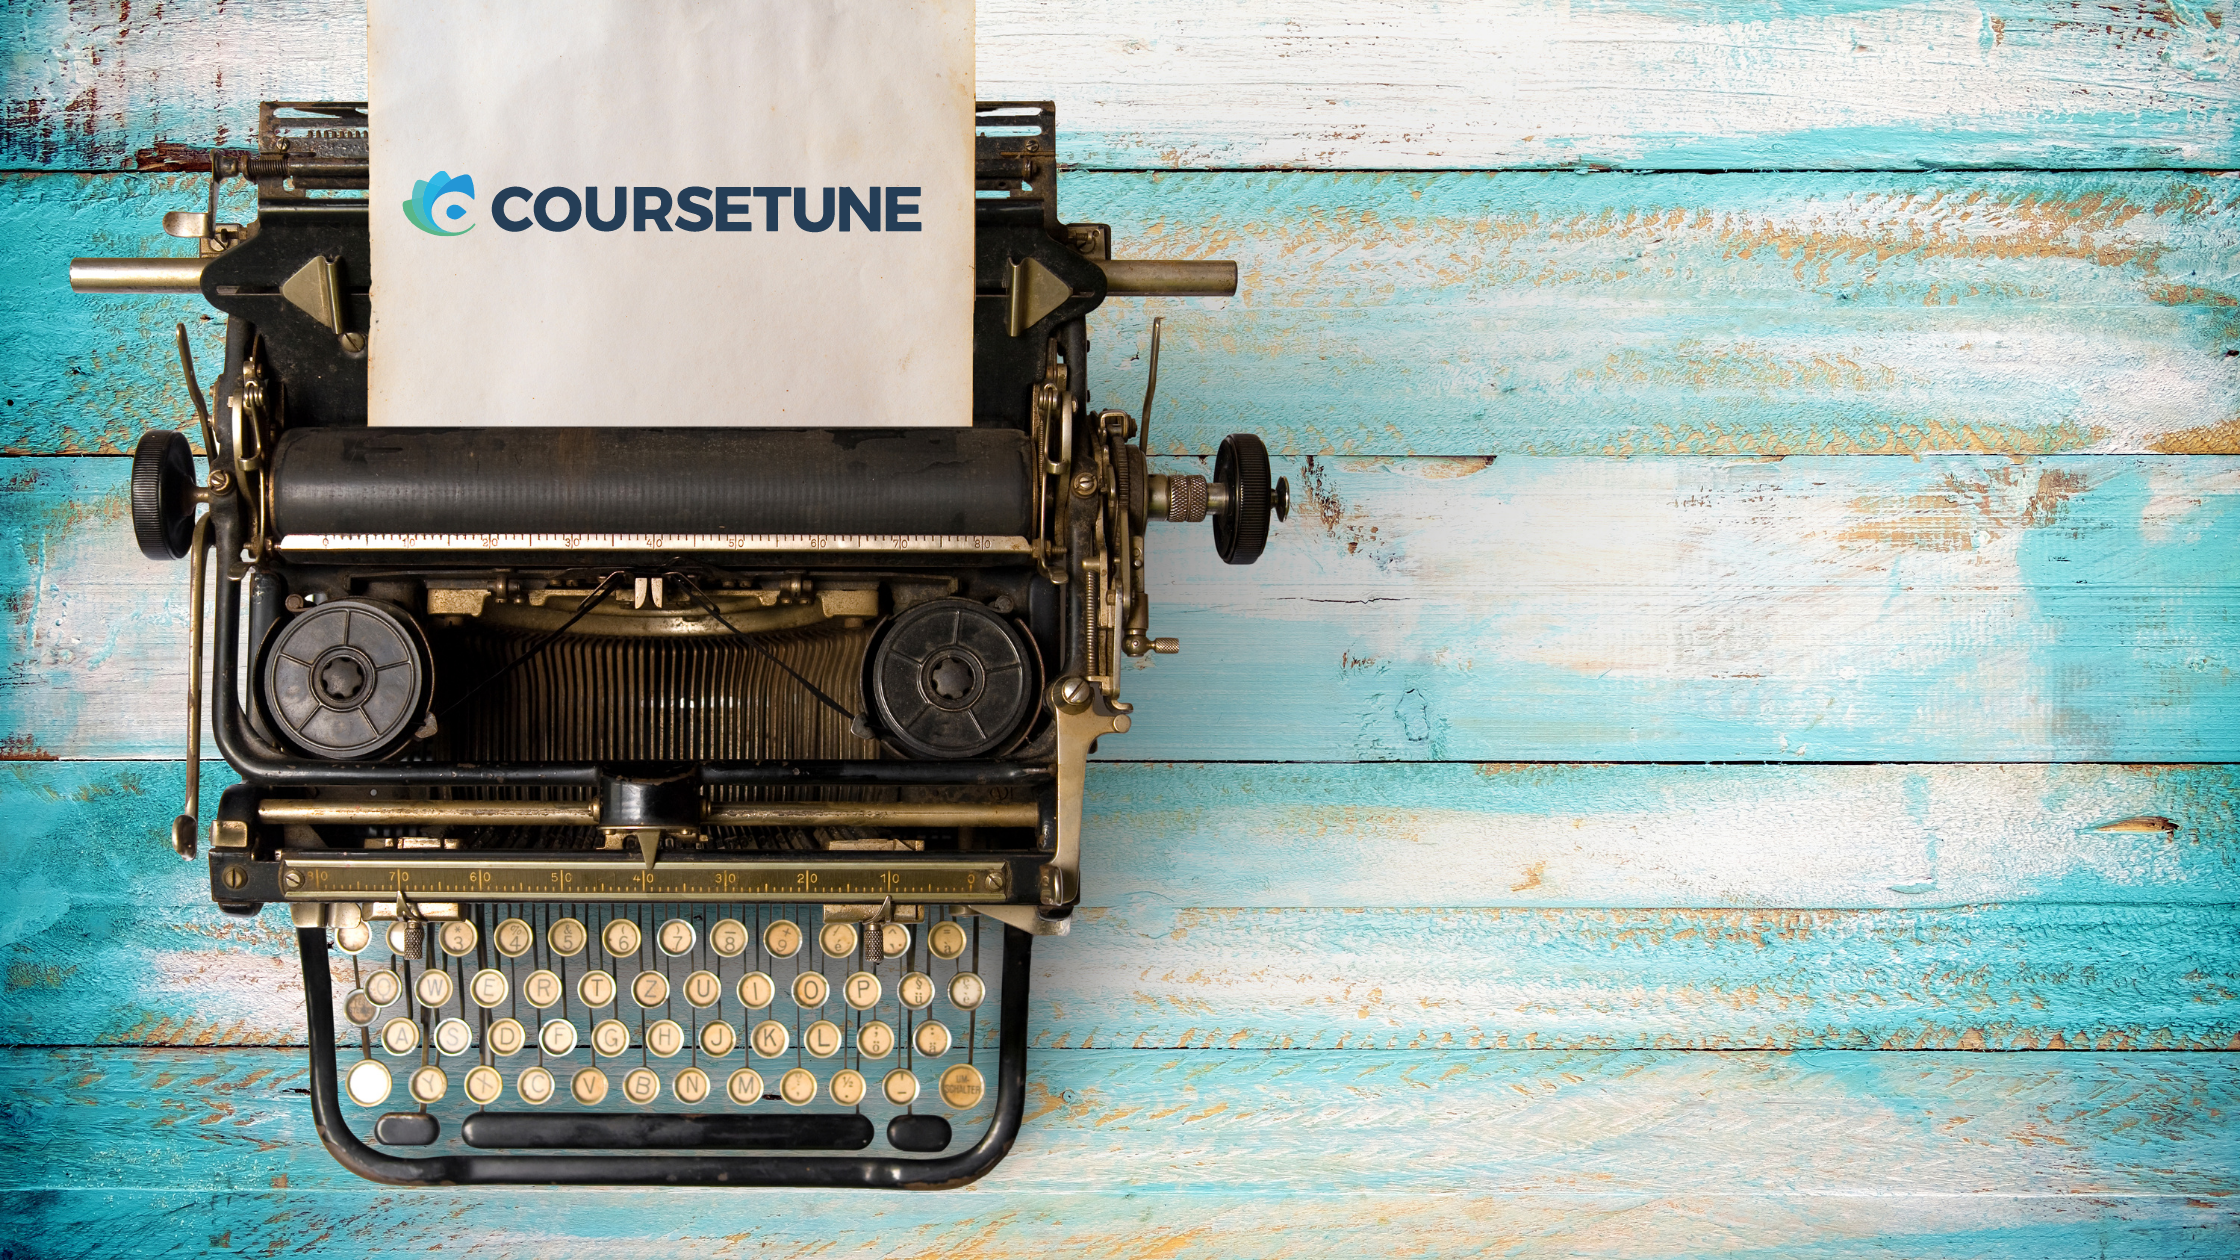 Coursetune Guest Post